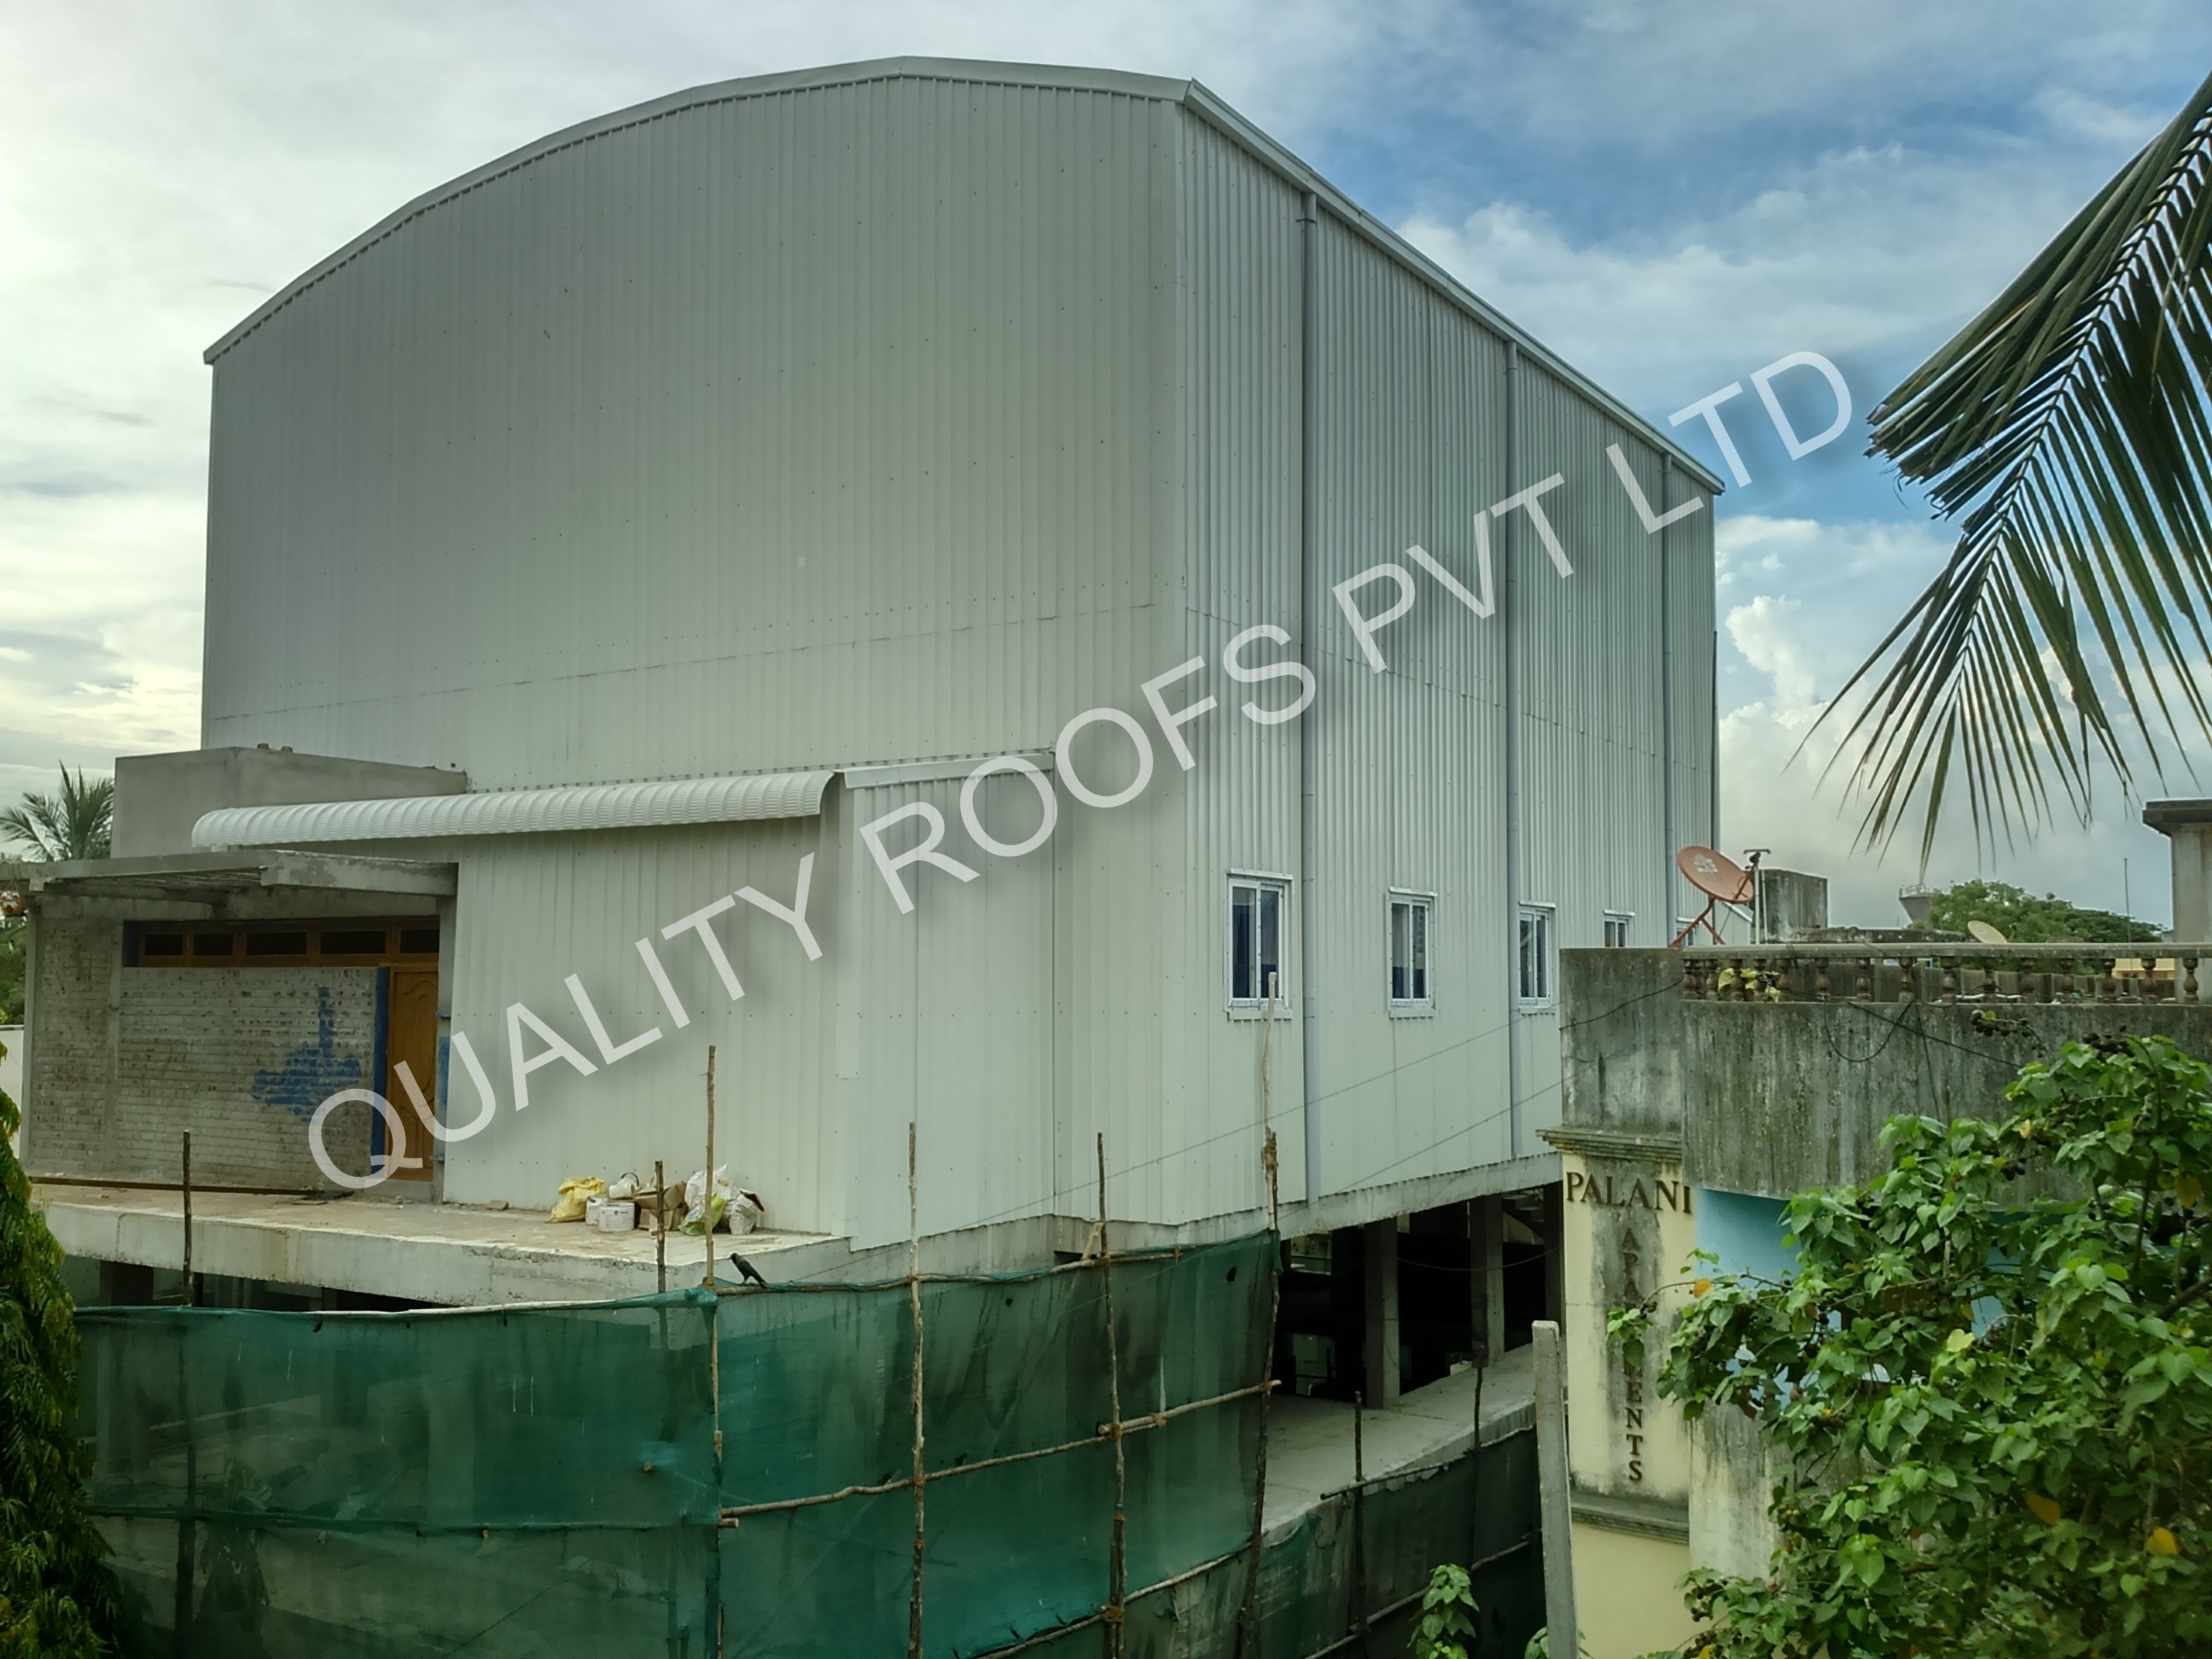 Best Sheet Metal Roofing Contractors in ChennaiWe are the best Sheet Metal Roofing Contractors in Chennai and best Roofing Dealers in Chennai, we undertake all Metal Roofings in Chennai like Badminton court Roofing in Chennai, Car Shed Roofing in Chennai, Polycarbonate Roofing in Chennai, Puf panel Roofing in Chennai etc., at very competitive price.